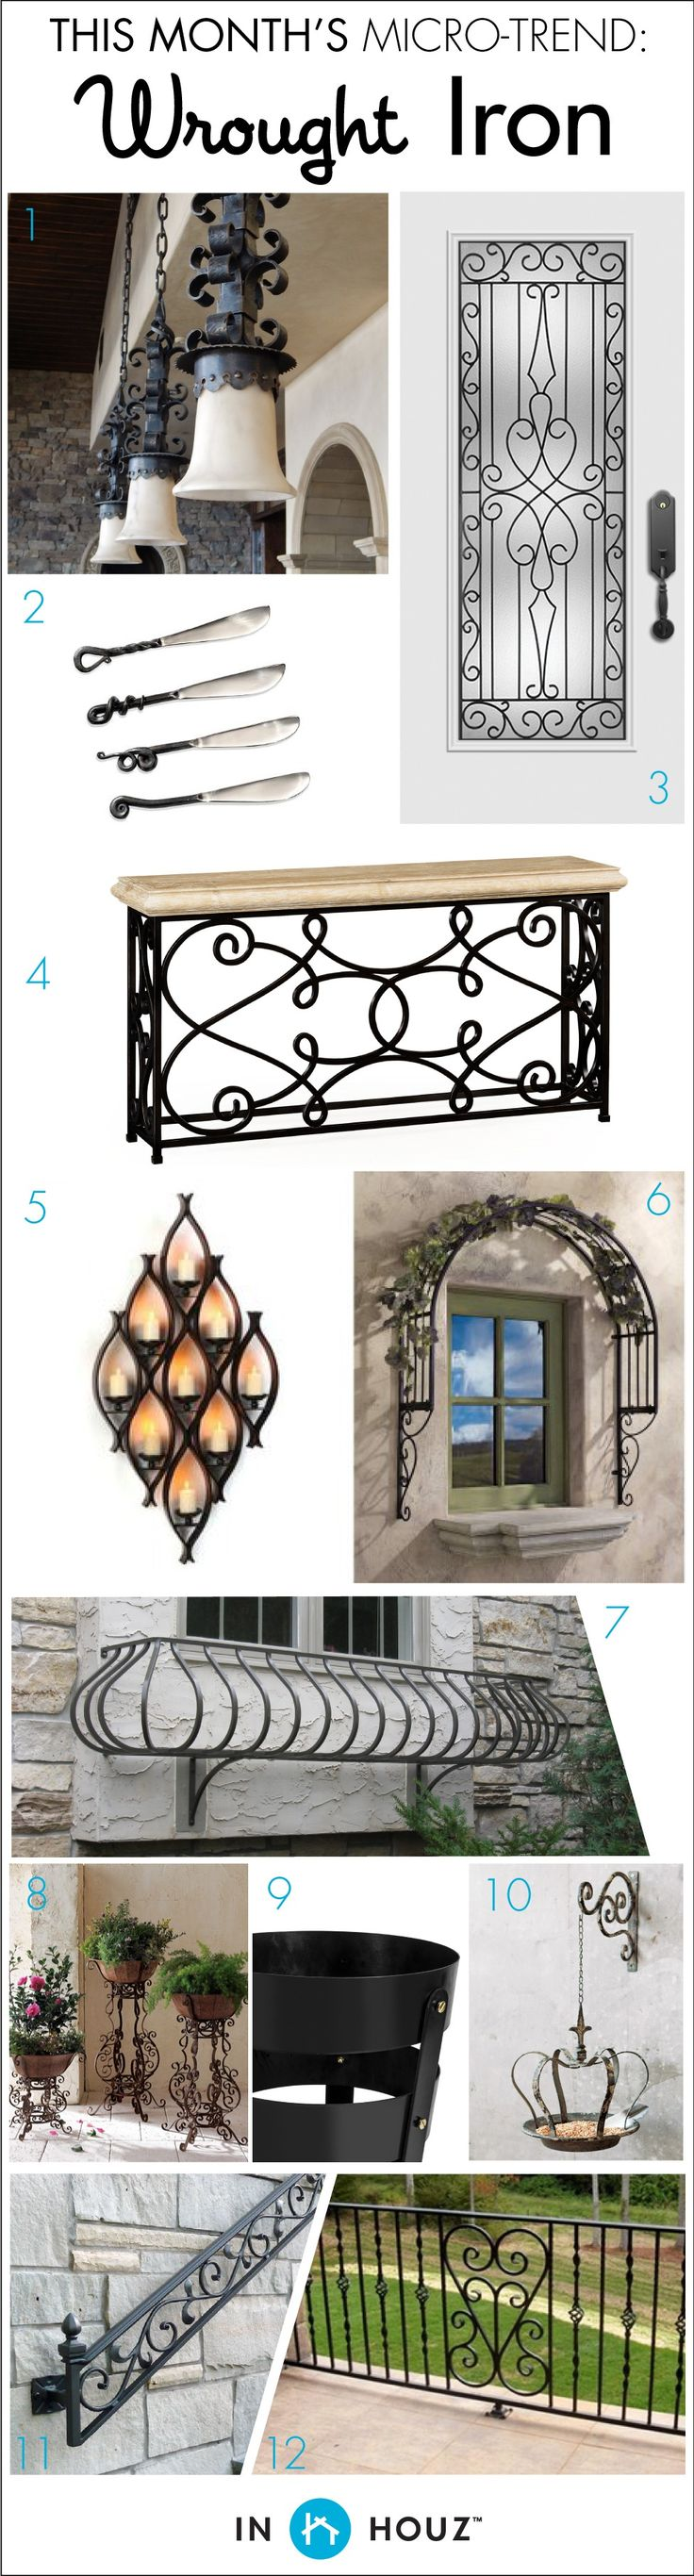 MICRO TREND // HOME DESIGN: WROUGHT IRON. Bring Some Districtive Old World  Hospitality To Your Home With The Design Style. These Products Would Be A  Perfect ... Part 81